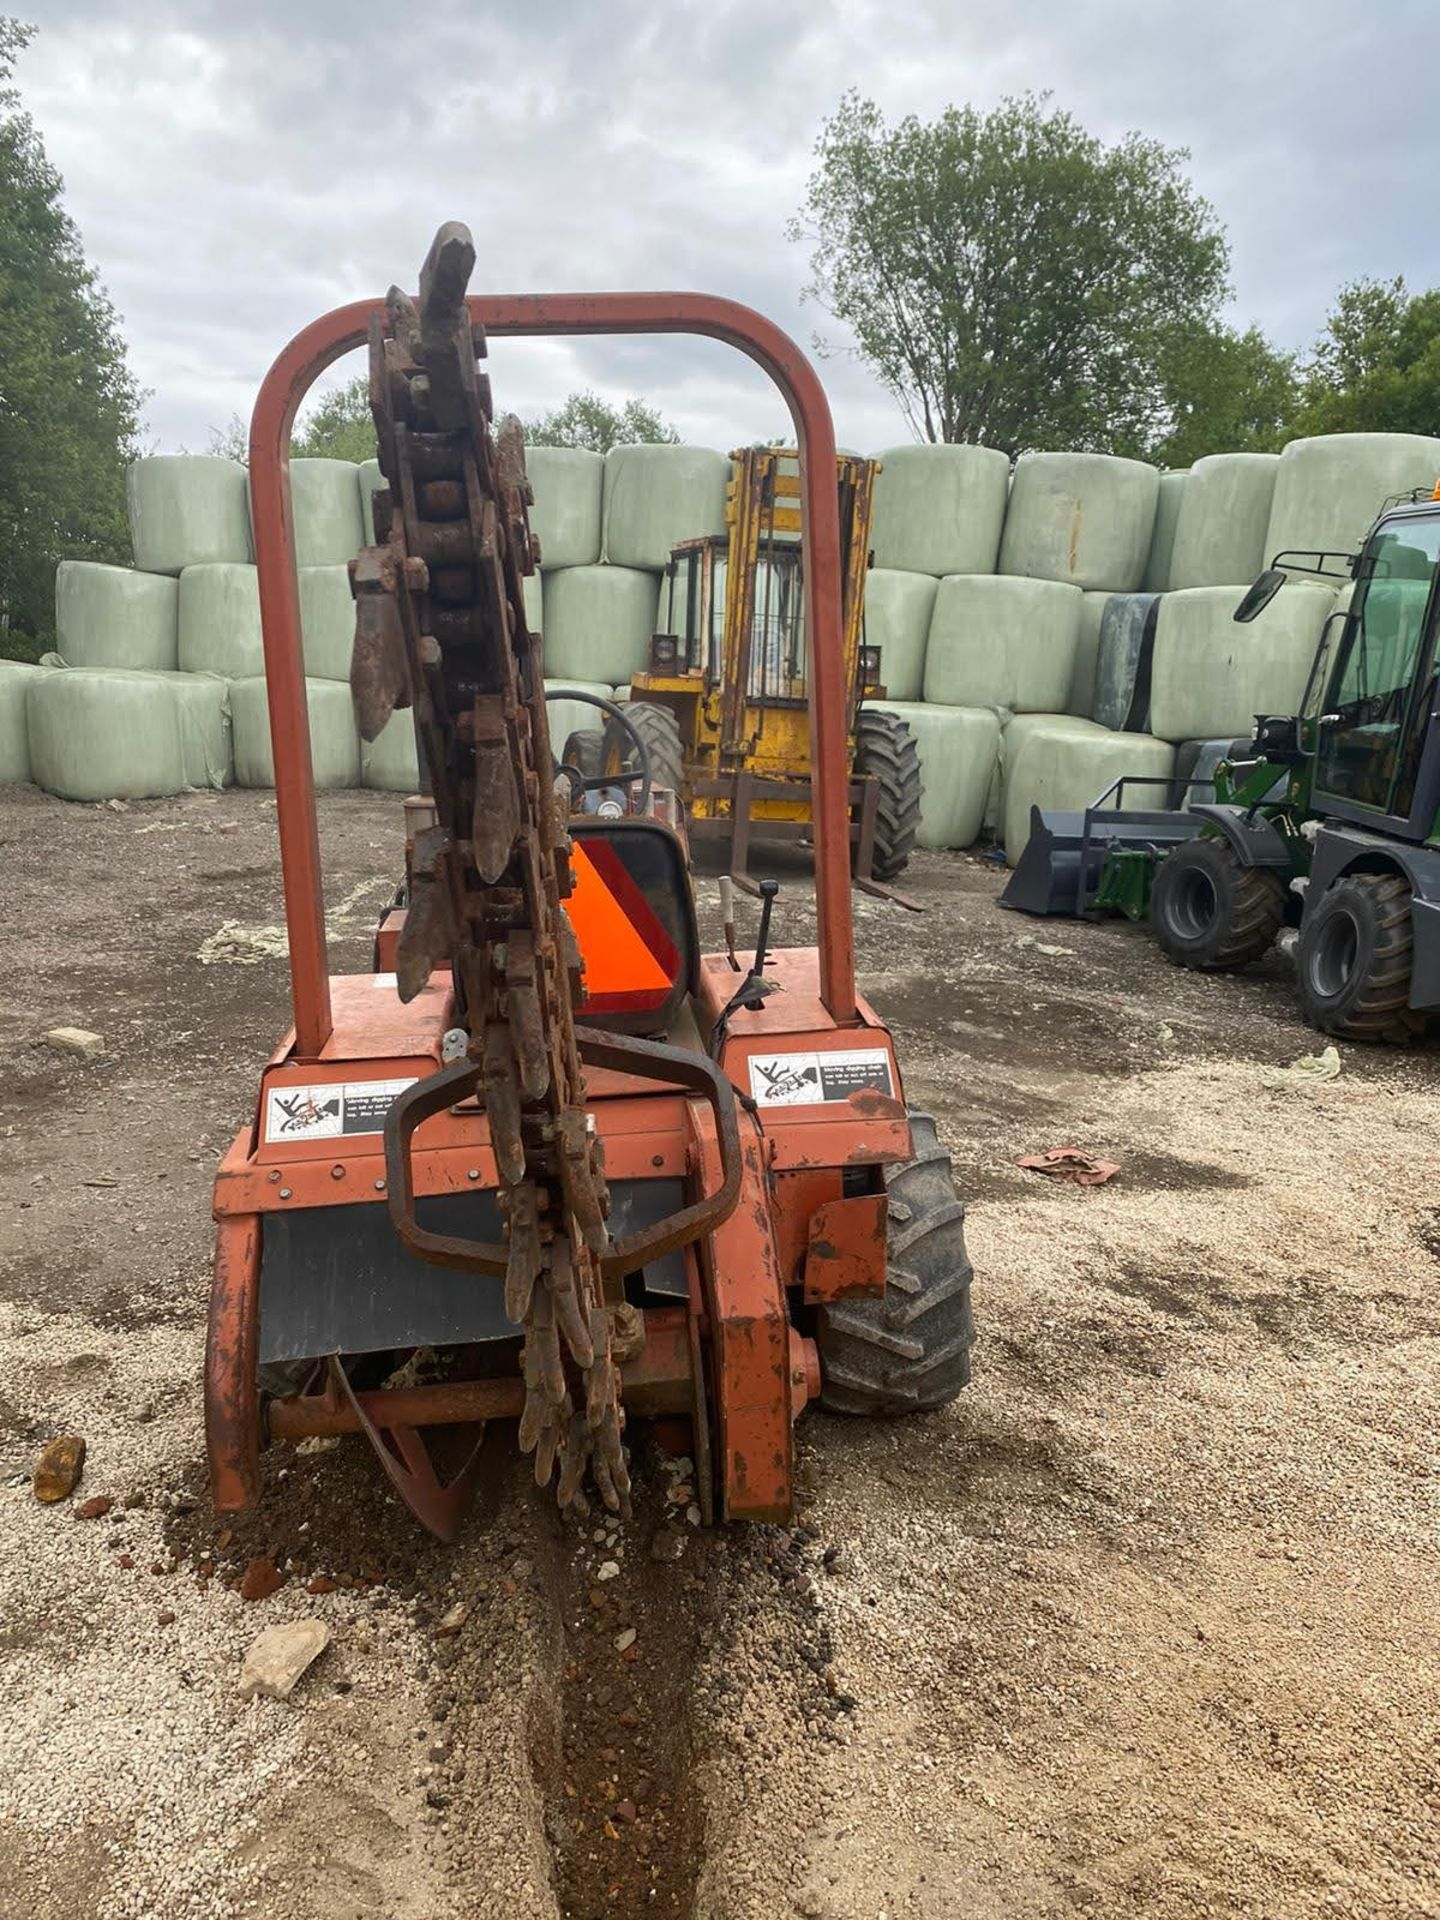 Lot 148 - DITCH WITCH 2310 TRENCHER, RUNS AND WORKS, SHOWING 768 HOURS *PLUS VAT*